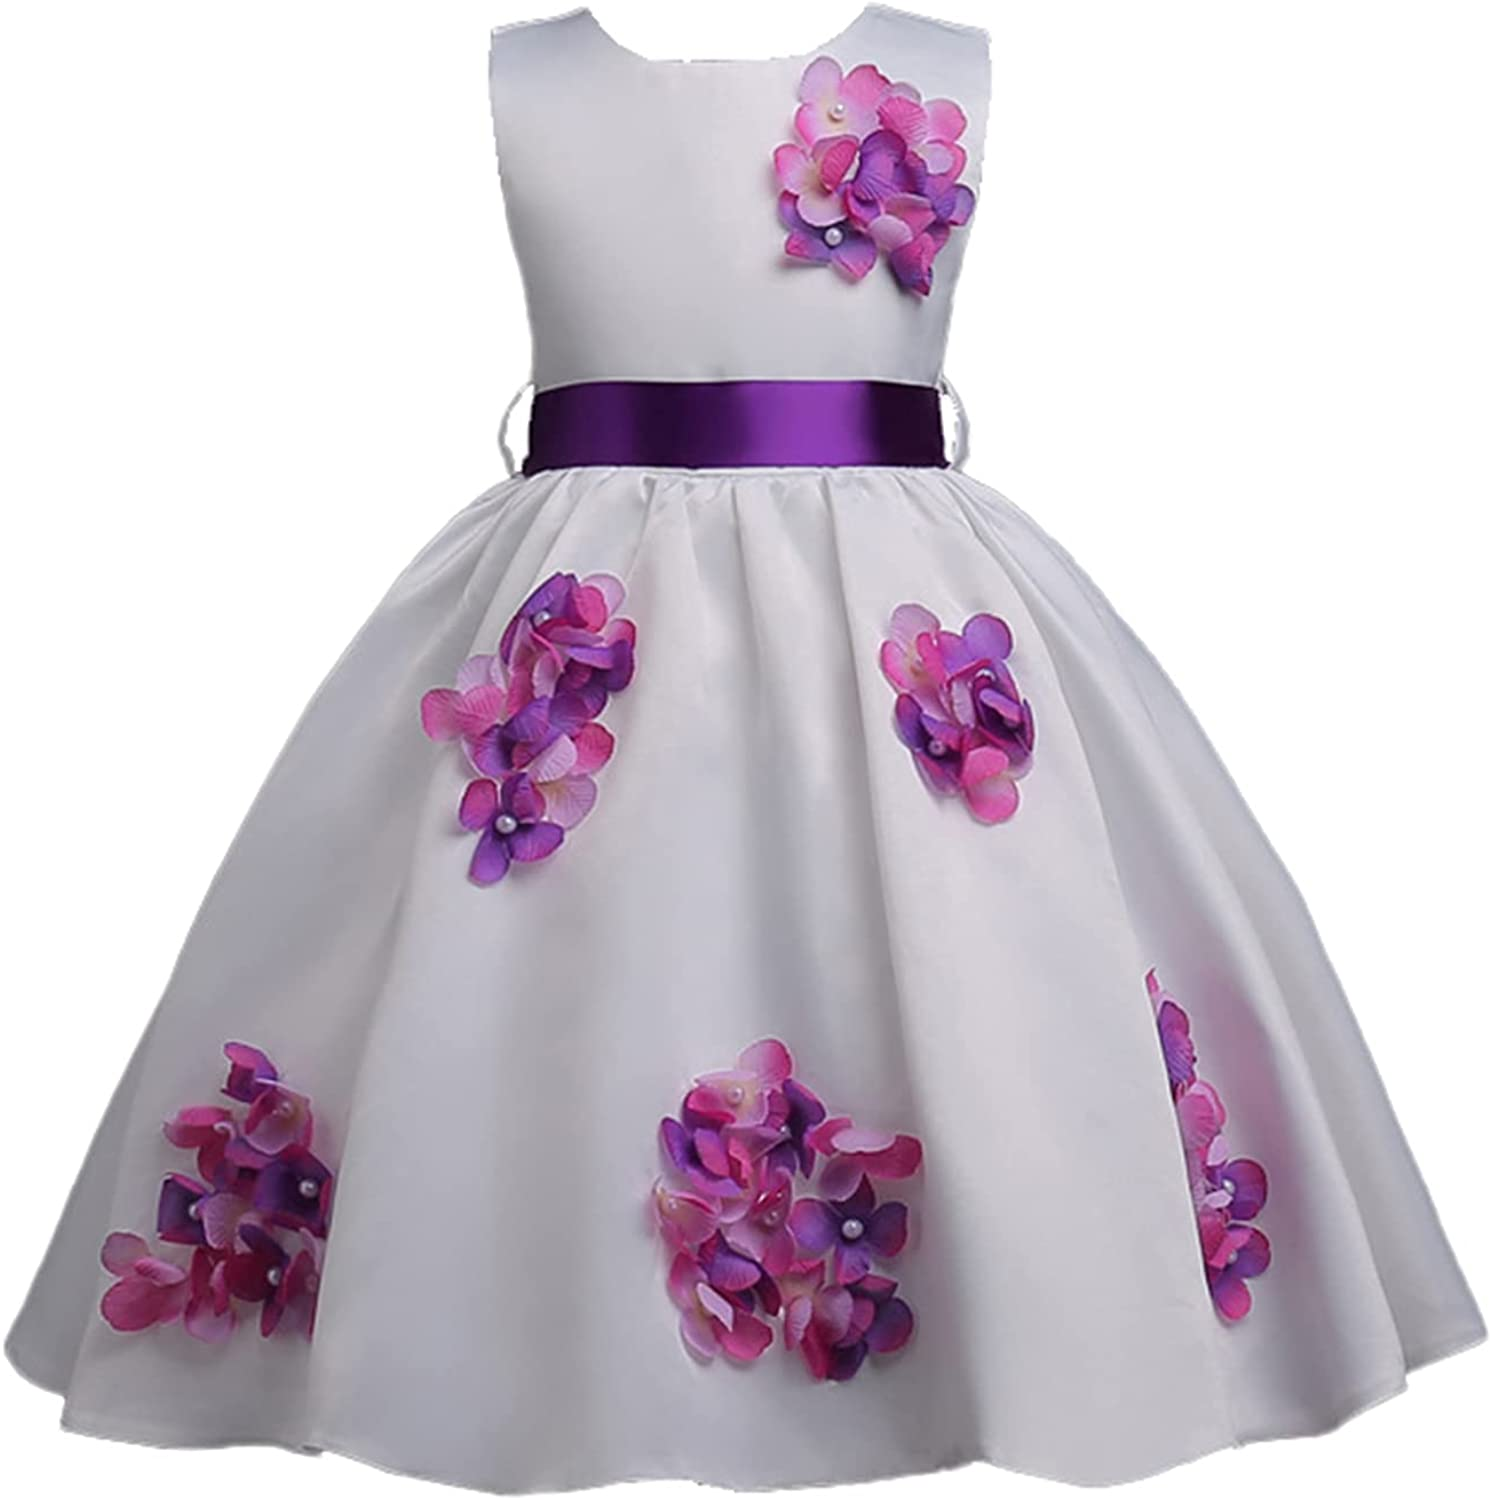 YiZYiF Kids Girl's Sleeveless 3D Flower Girl Dress Beaded Formal Party Special Occasion Dresses